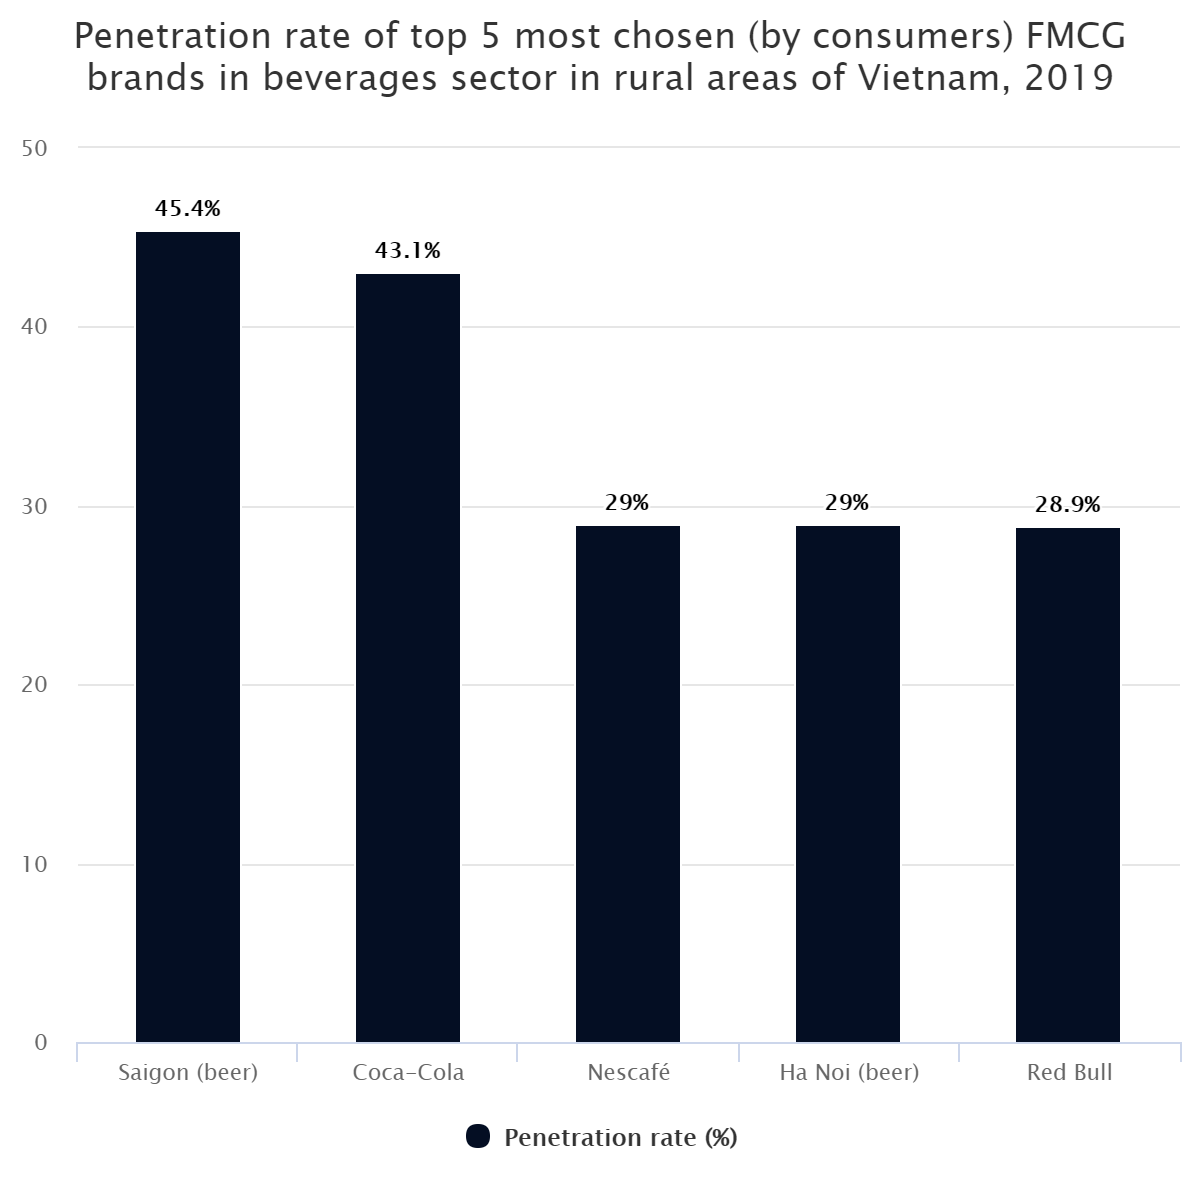 Penetration rate of top 5 most chosen (by consumers) FMCG brands in beverages sector in rural areas of Vietnam, 2019